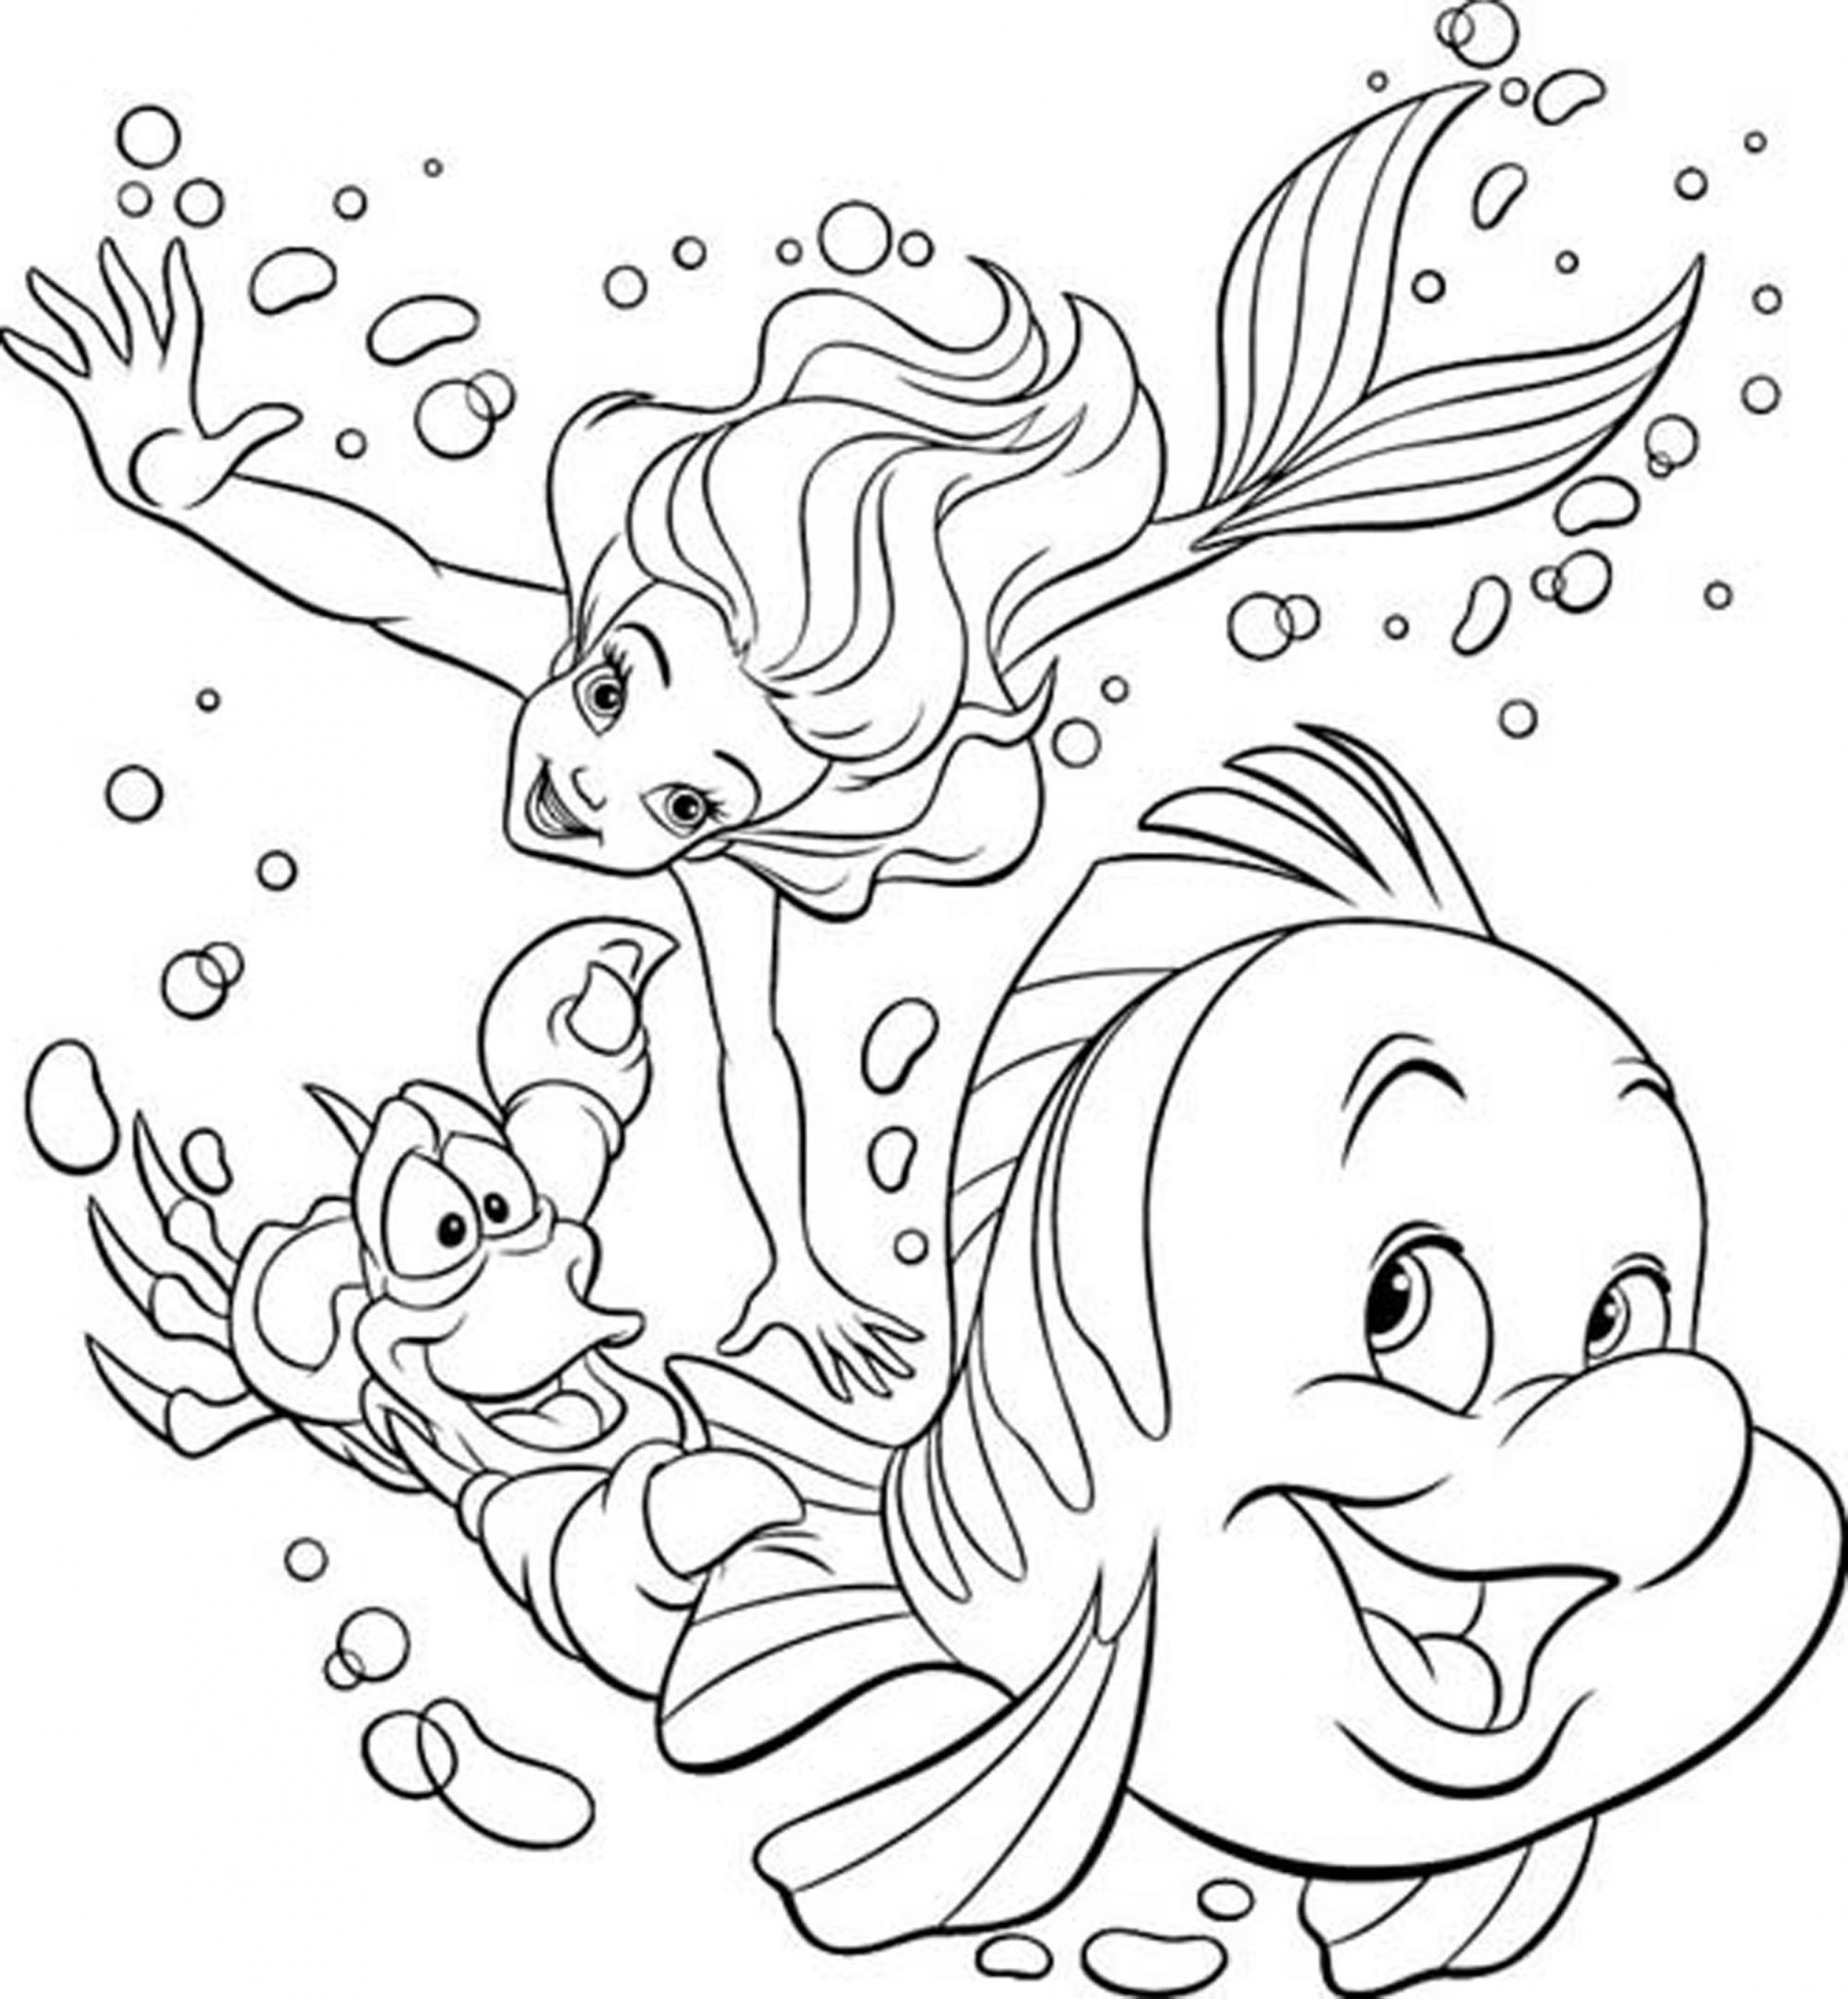 disney free colouring pages free coloring pages for kids disney stackbookmarksinfo pages free colouring disney